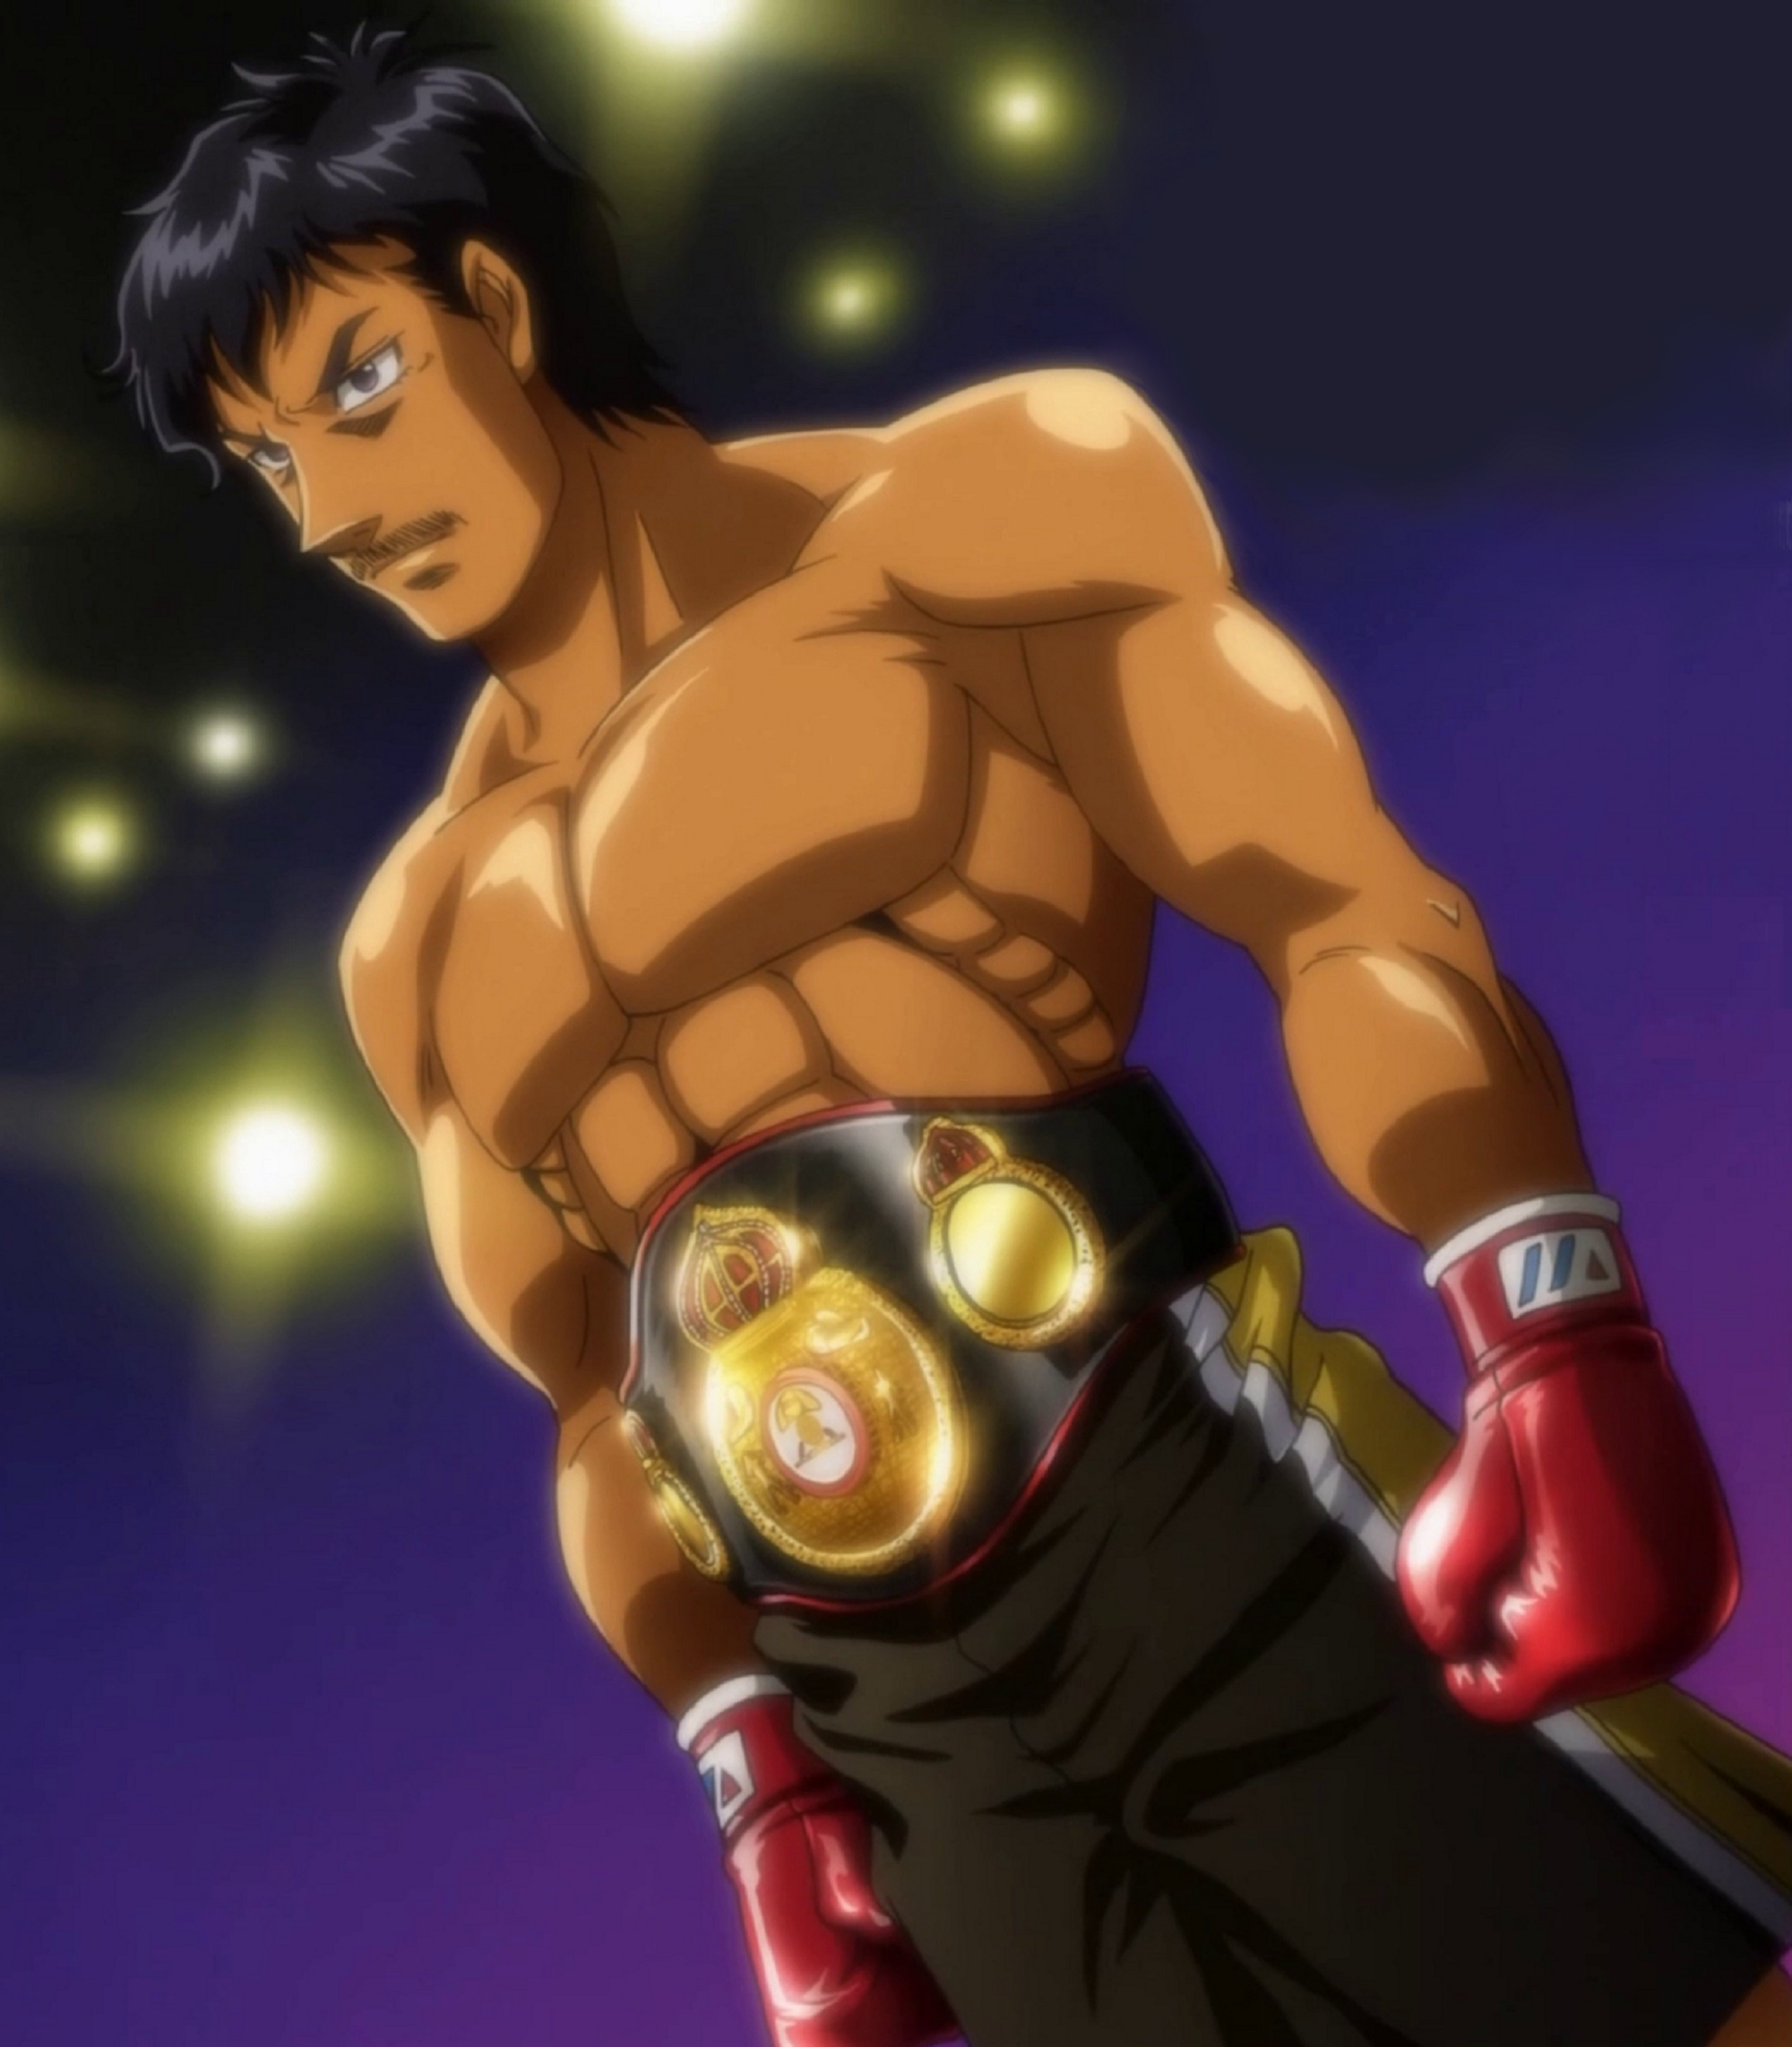 hajime no ippo season 2 english dub download